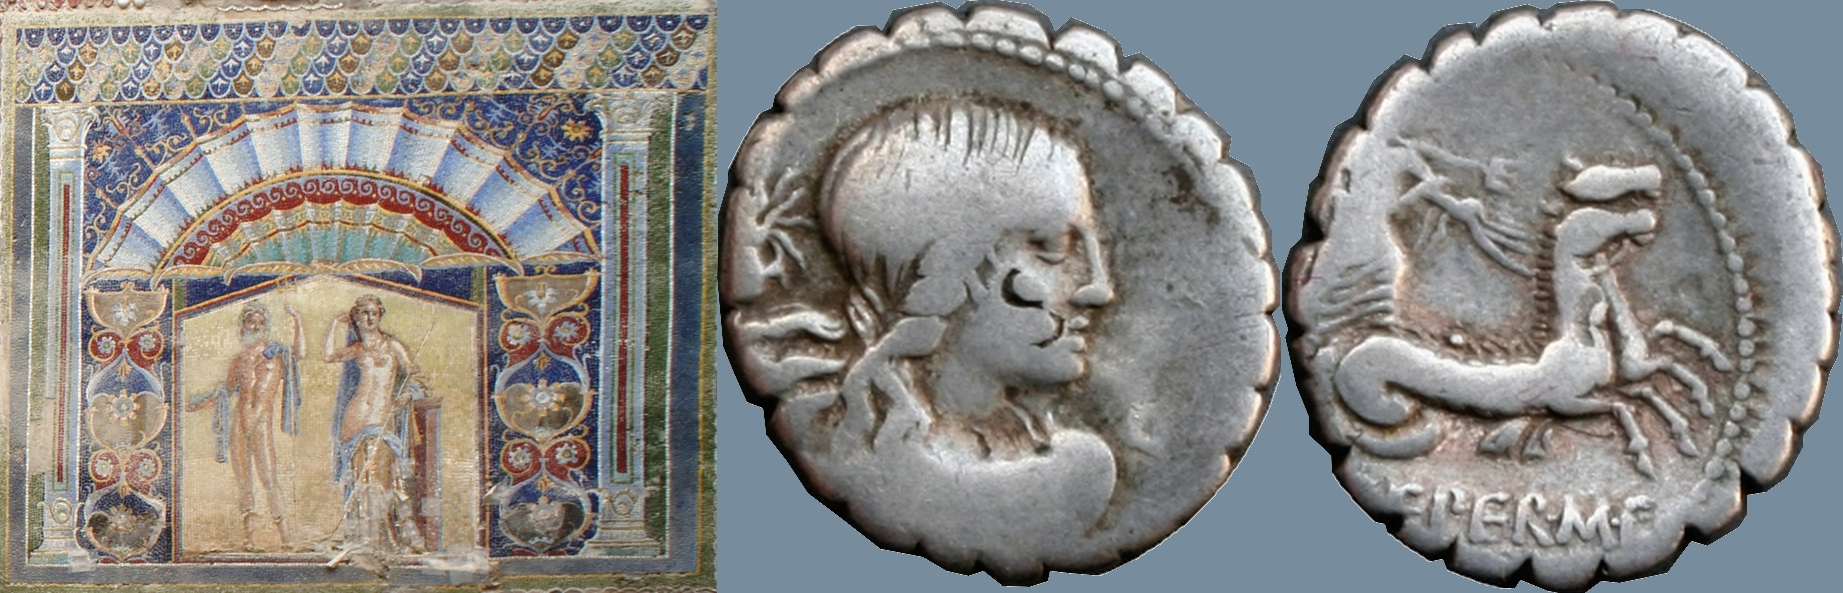 69BC 399/1 coin of Creperius with Neptune and Amphitrite, and mosaic of Neptune and Amphitrite at the eponymous house in Herculaneum